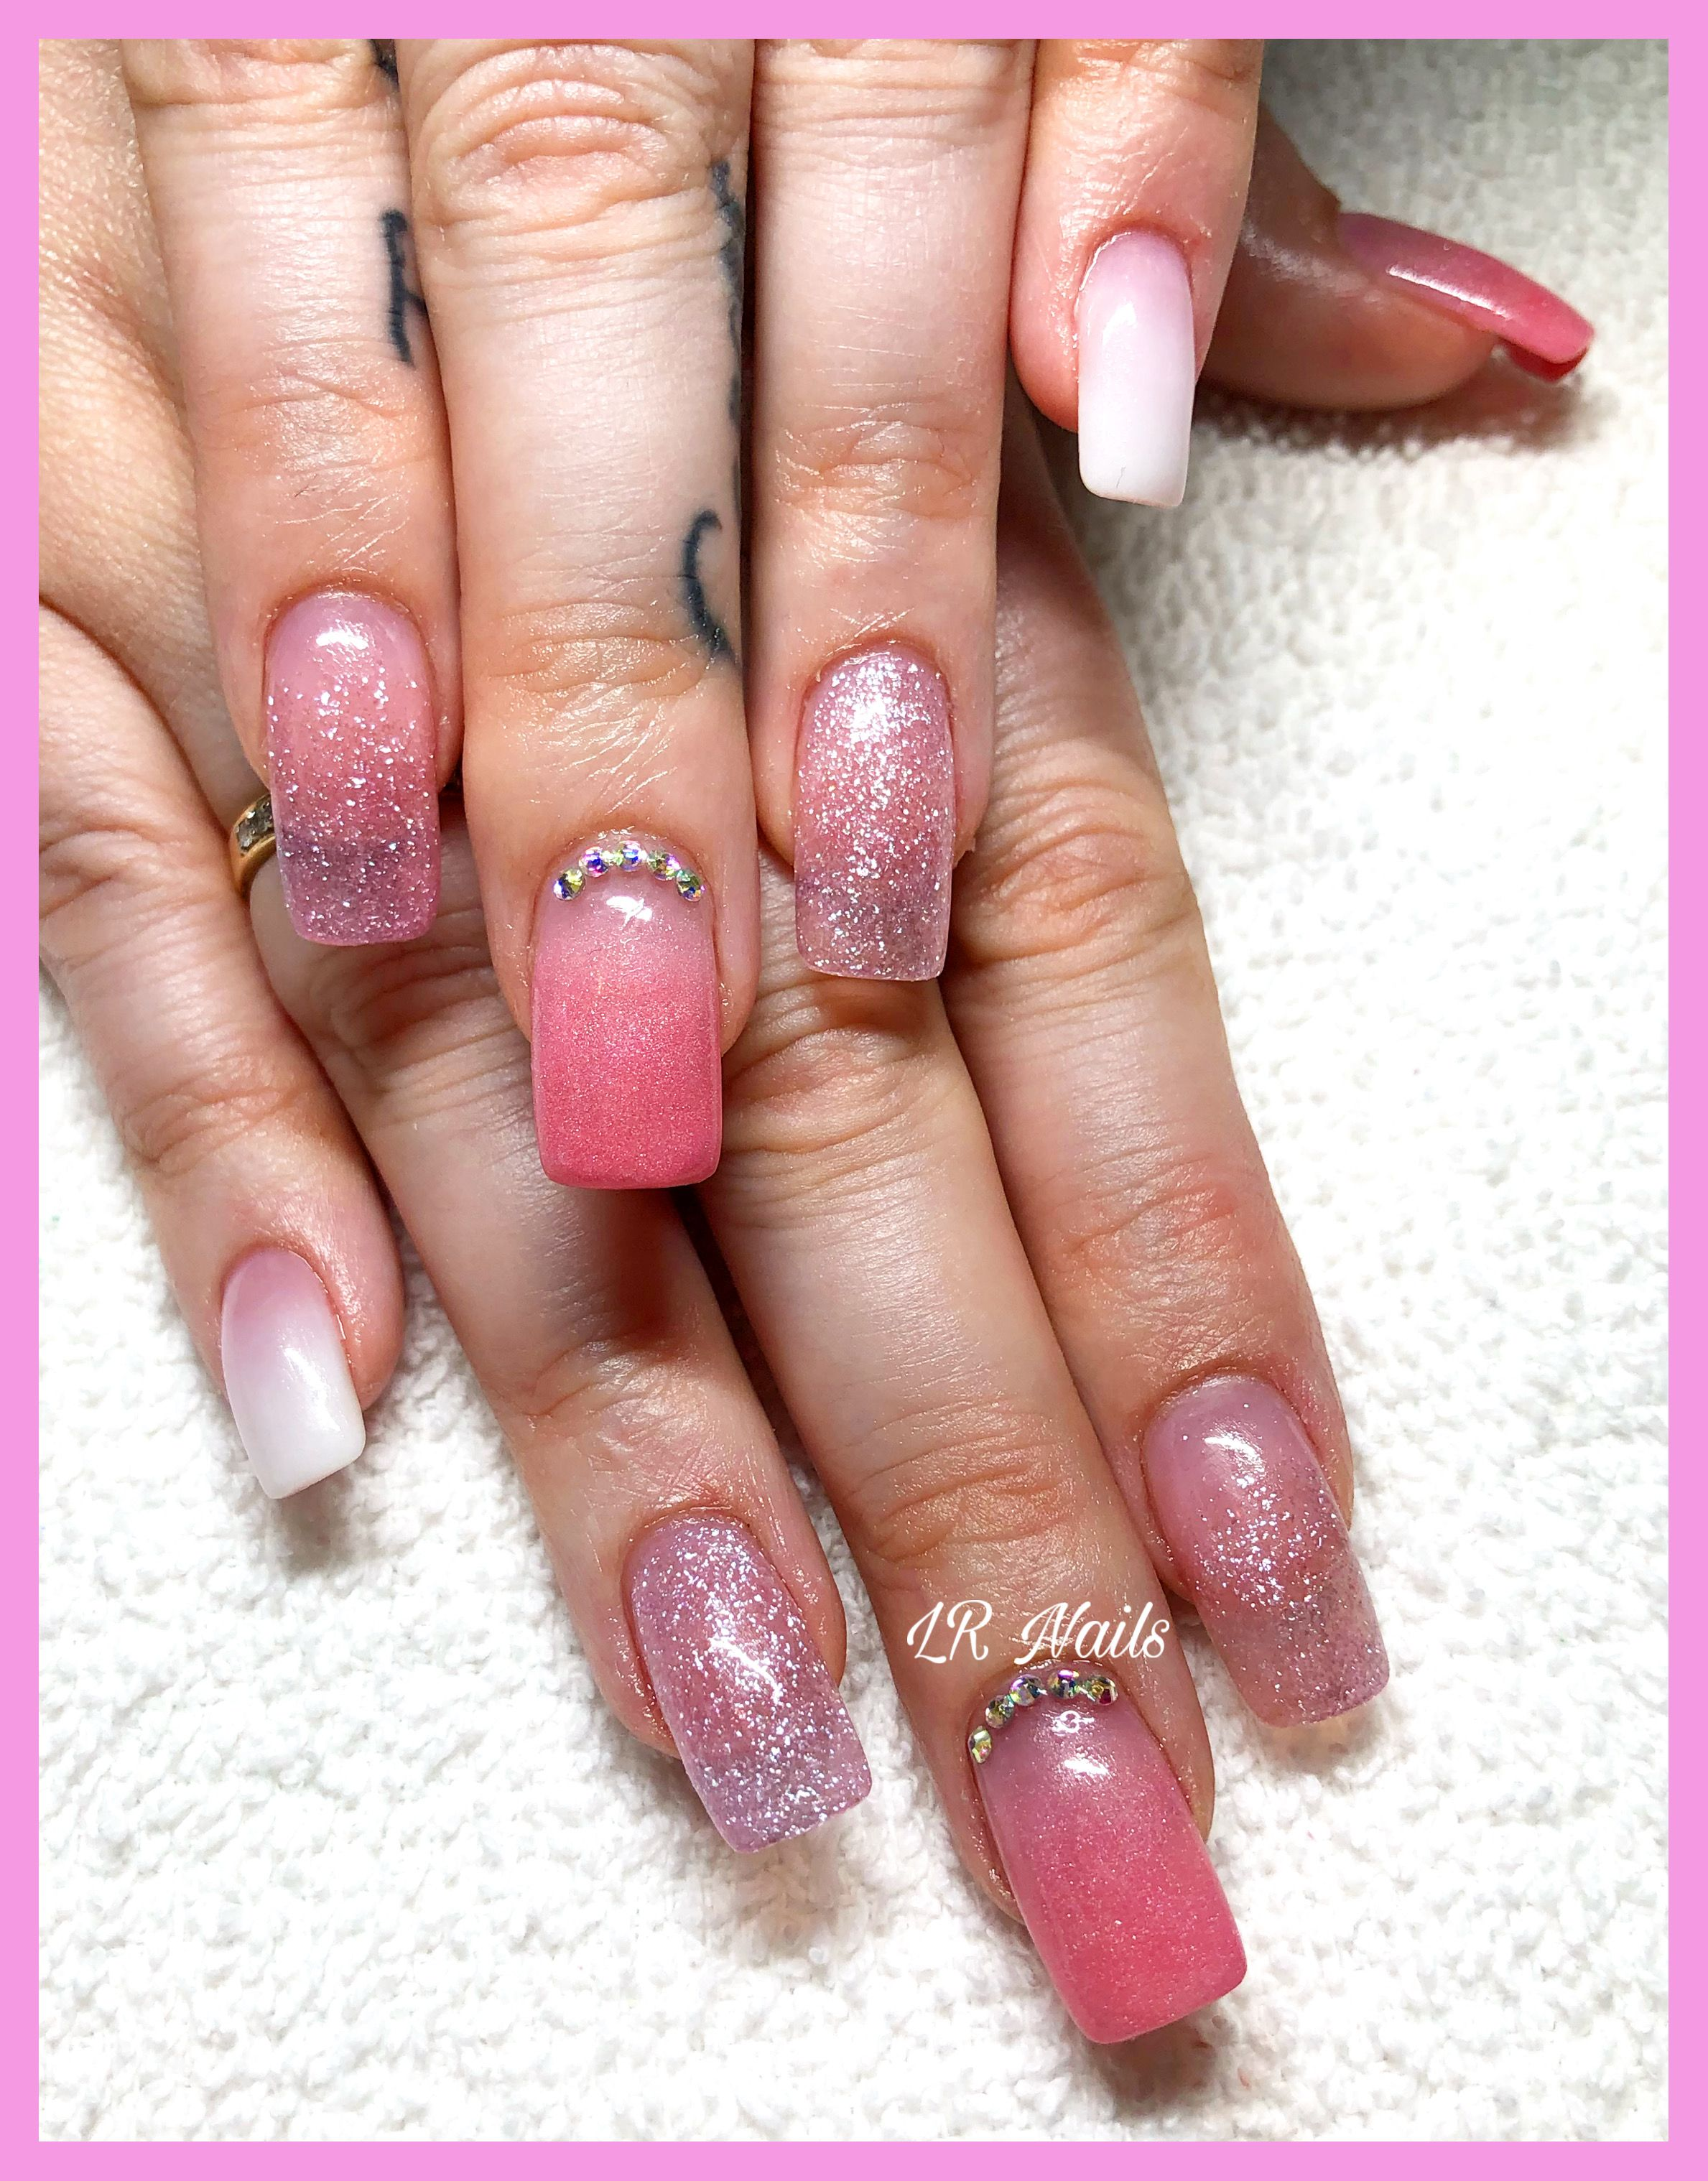 Pin by Jeanette Arias on Nails | Pink acrylic nails, Pink